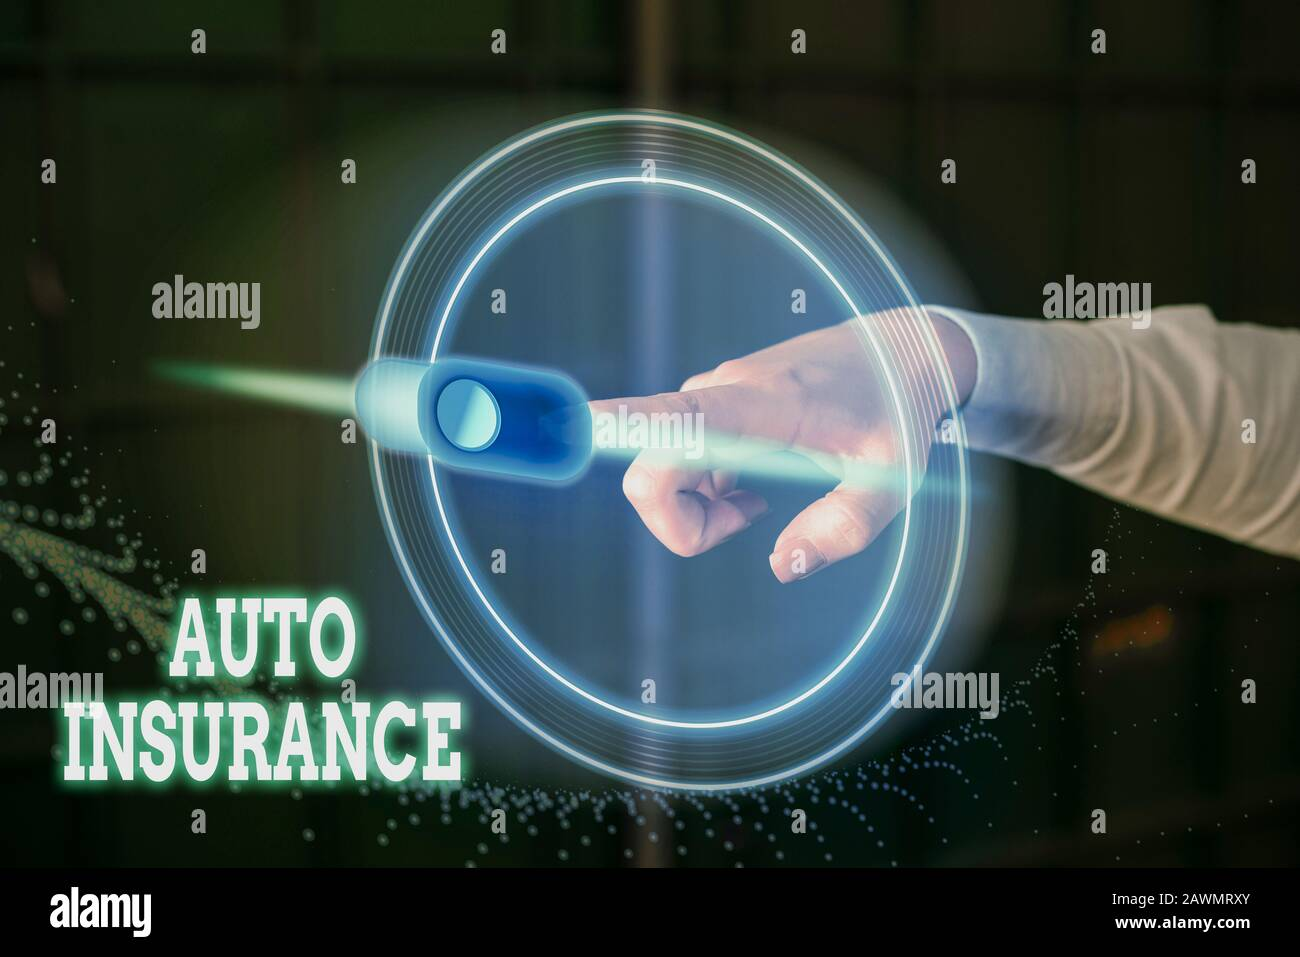 Conceptual Hand Writing Showing Auto Insurance Concept Meaning Mitigate Costs Associated With Getting Into An Auto Accident Stock Photo Alamy